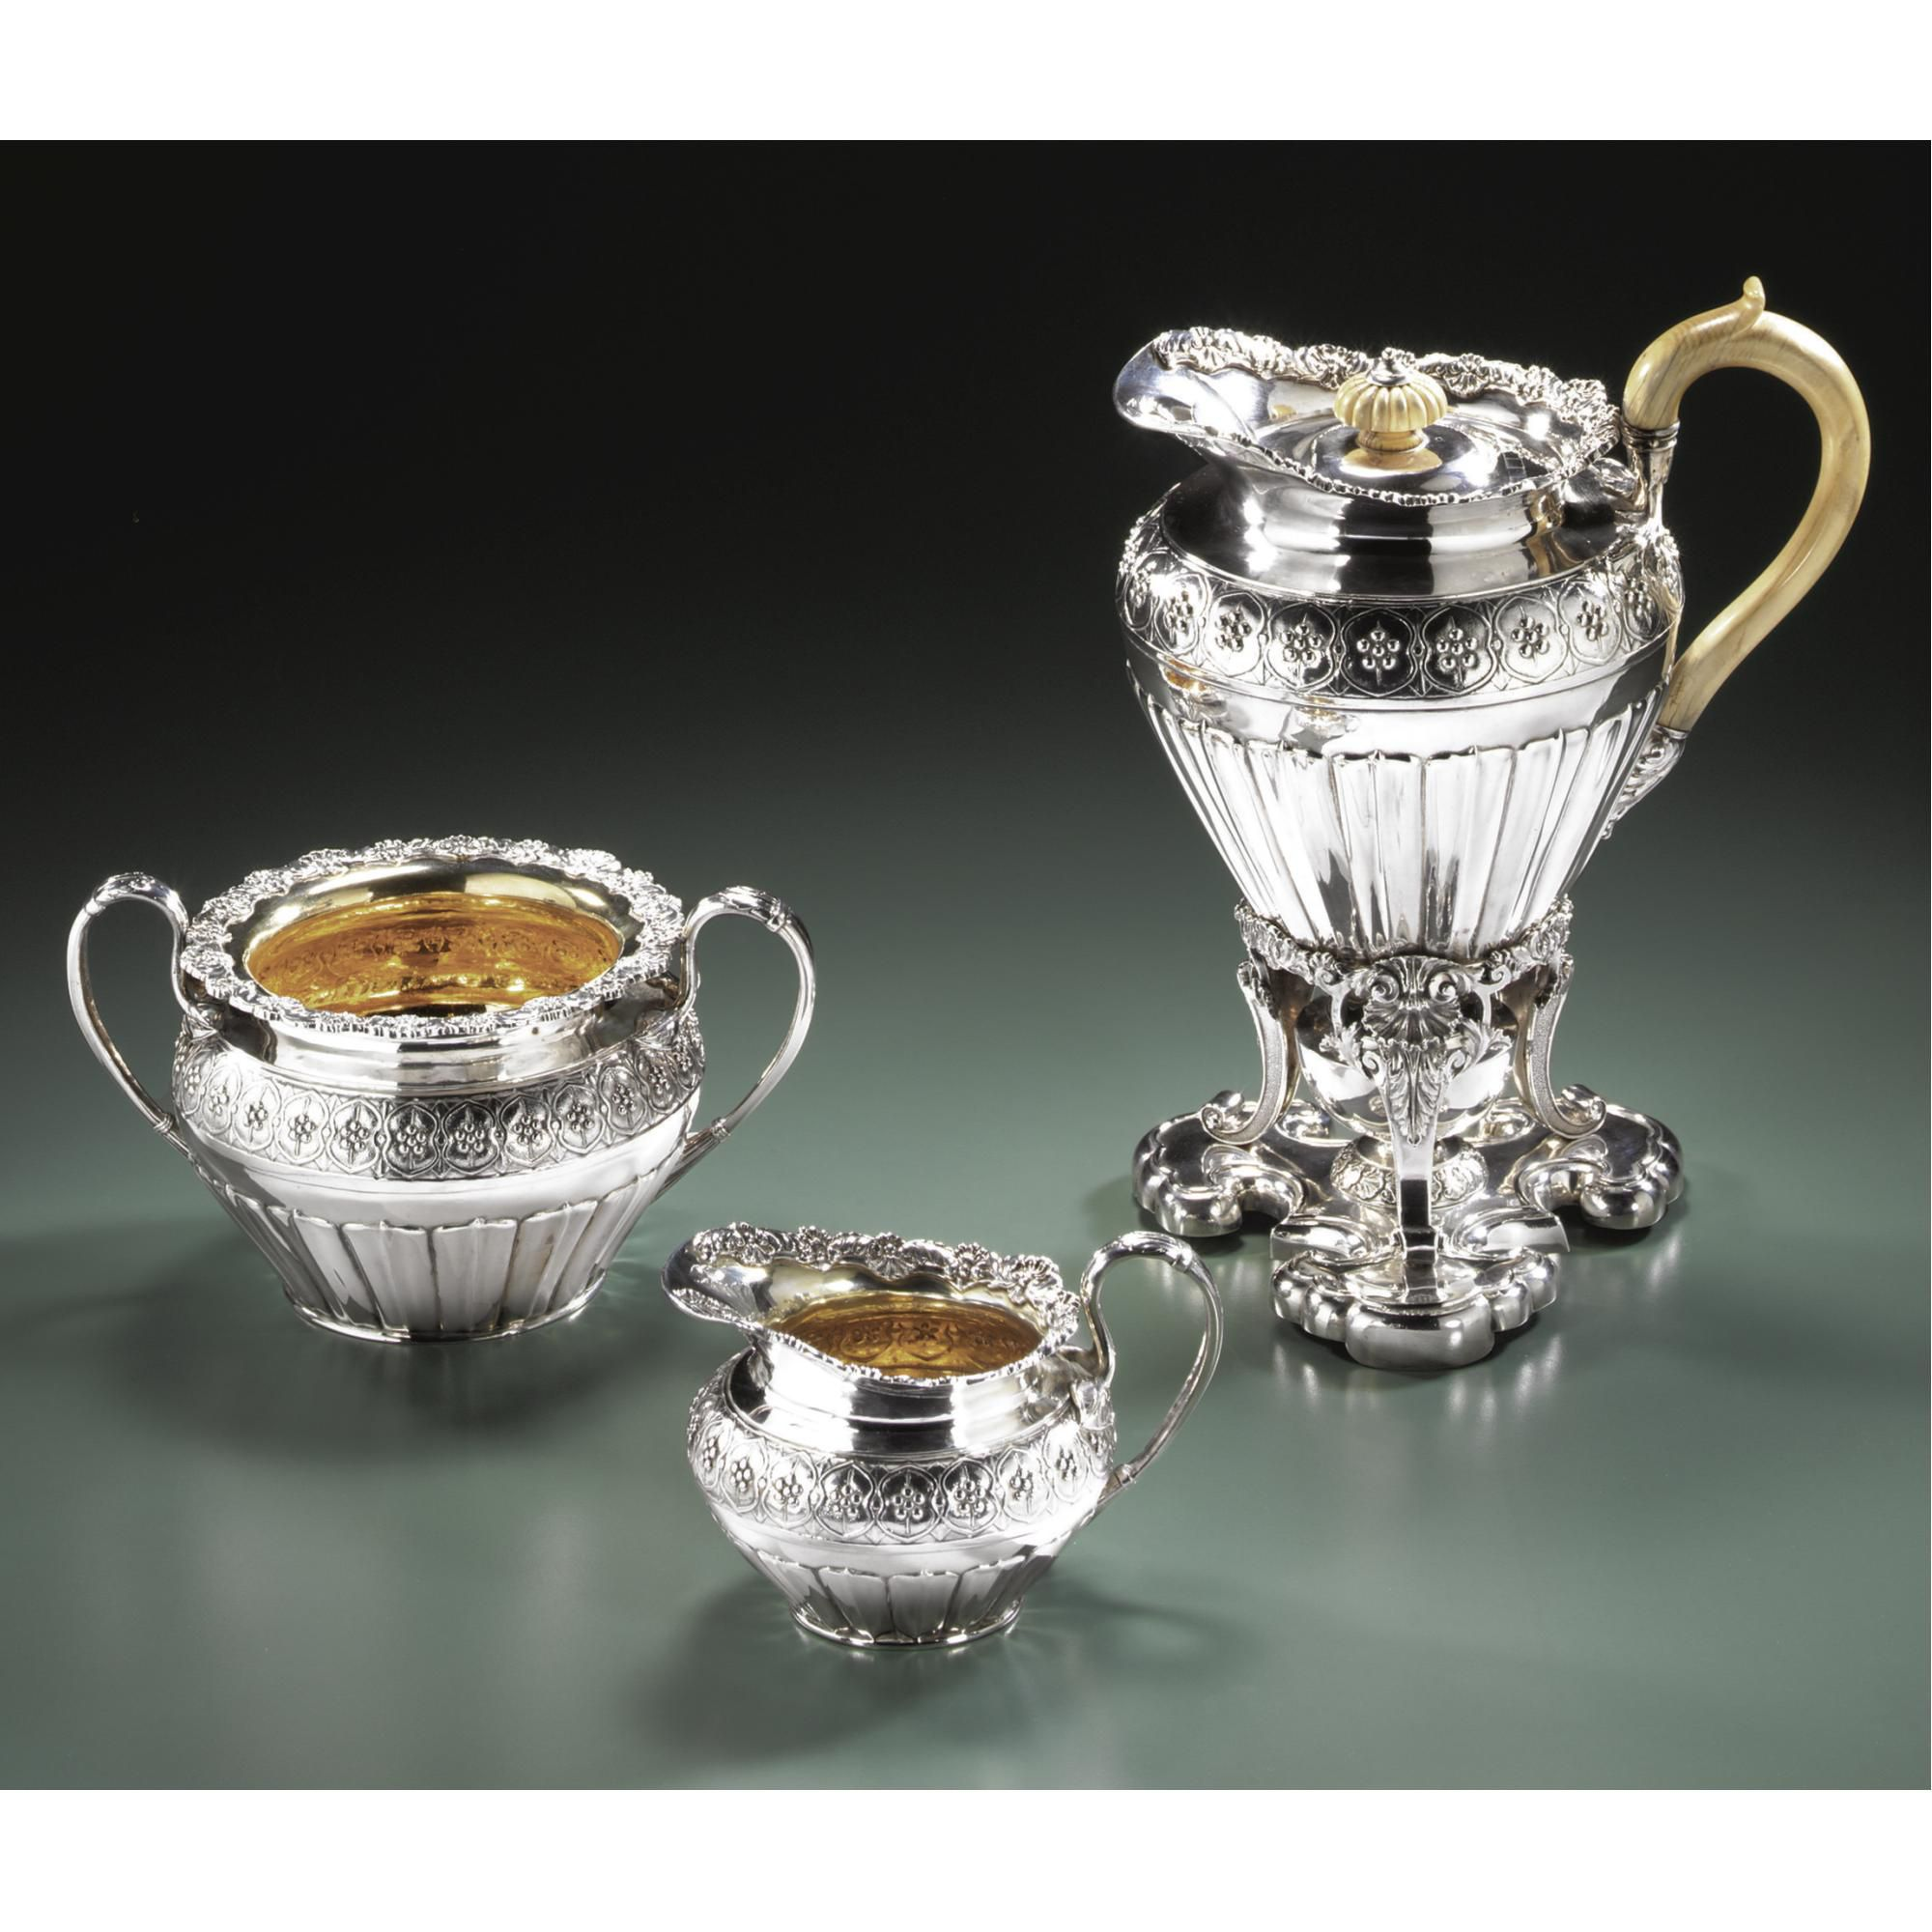 A Regency silver four-piece tea set, Philip Rundell, London, 1820/21 - Sotheby's